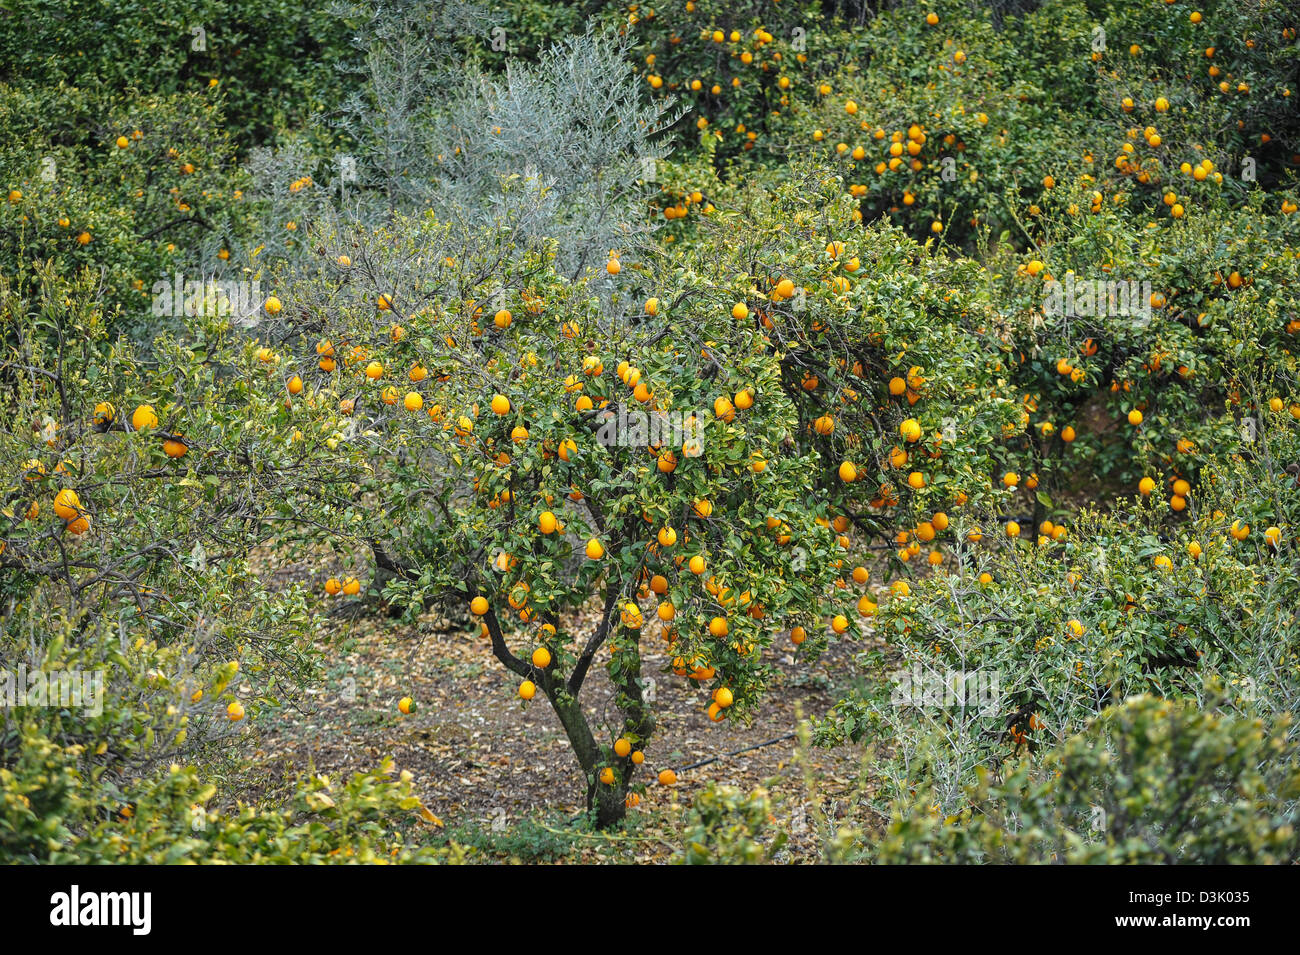 Oranges growing in springtime, Andalusia Spain. - Stock Image